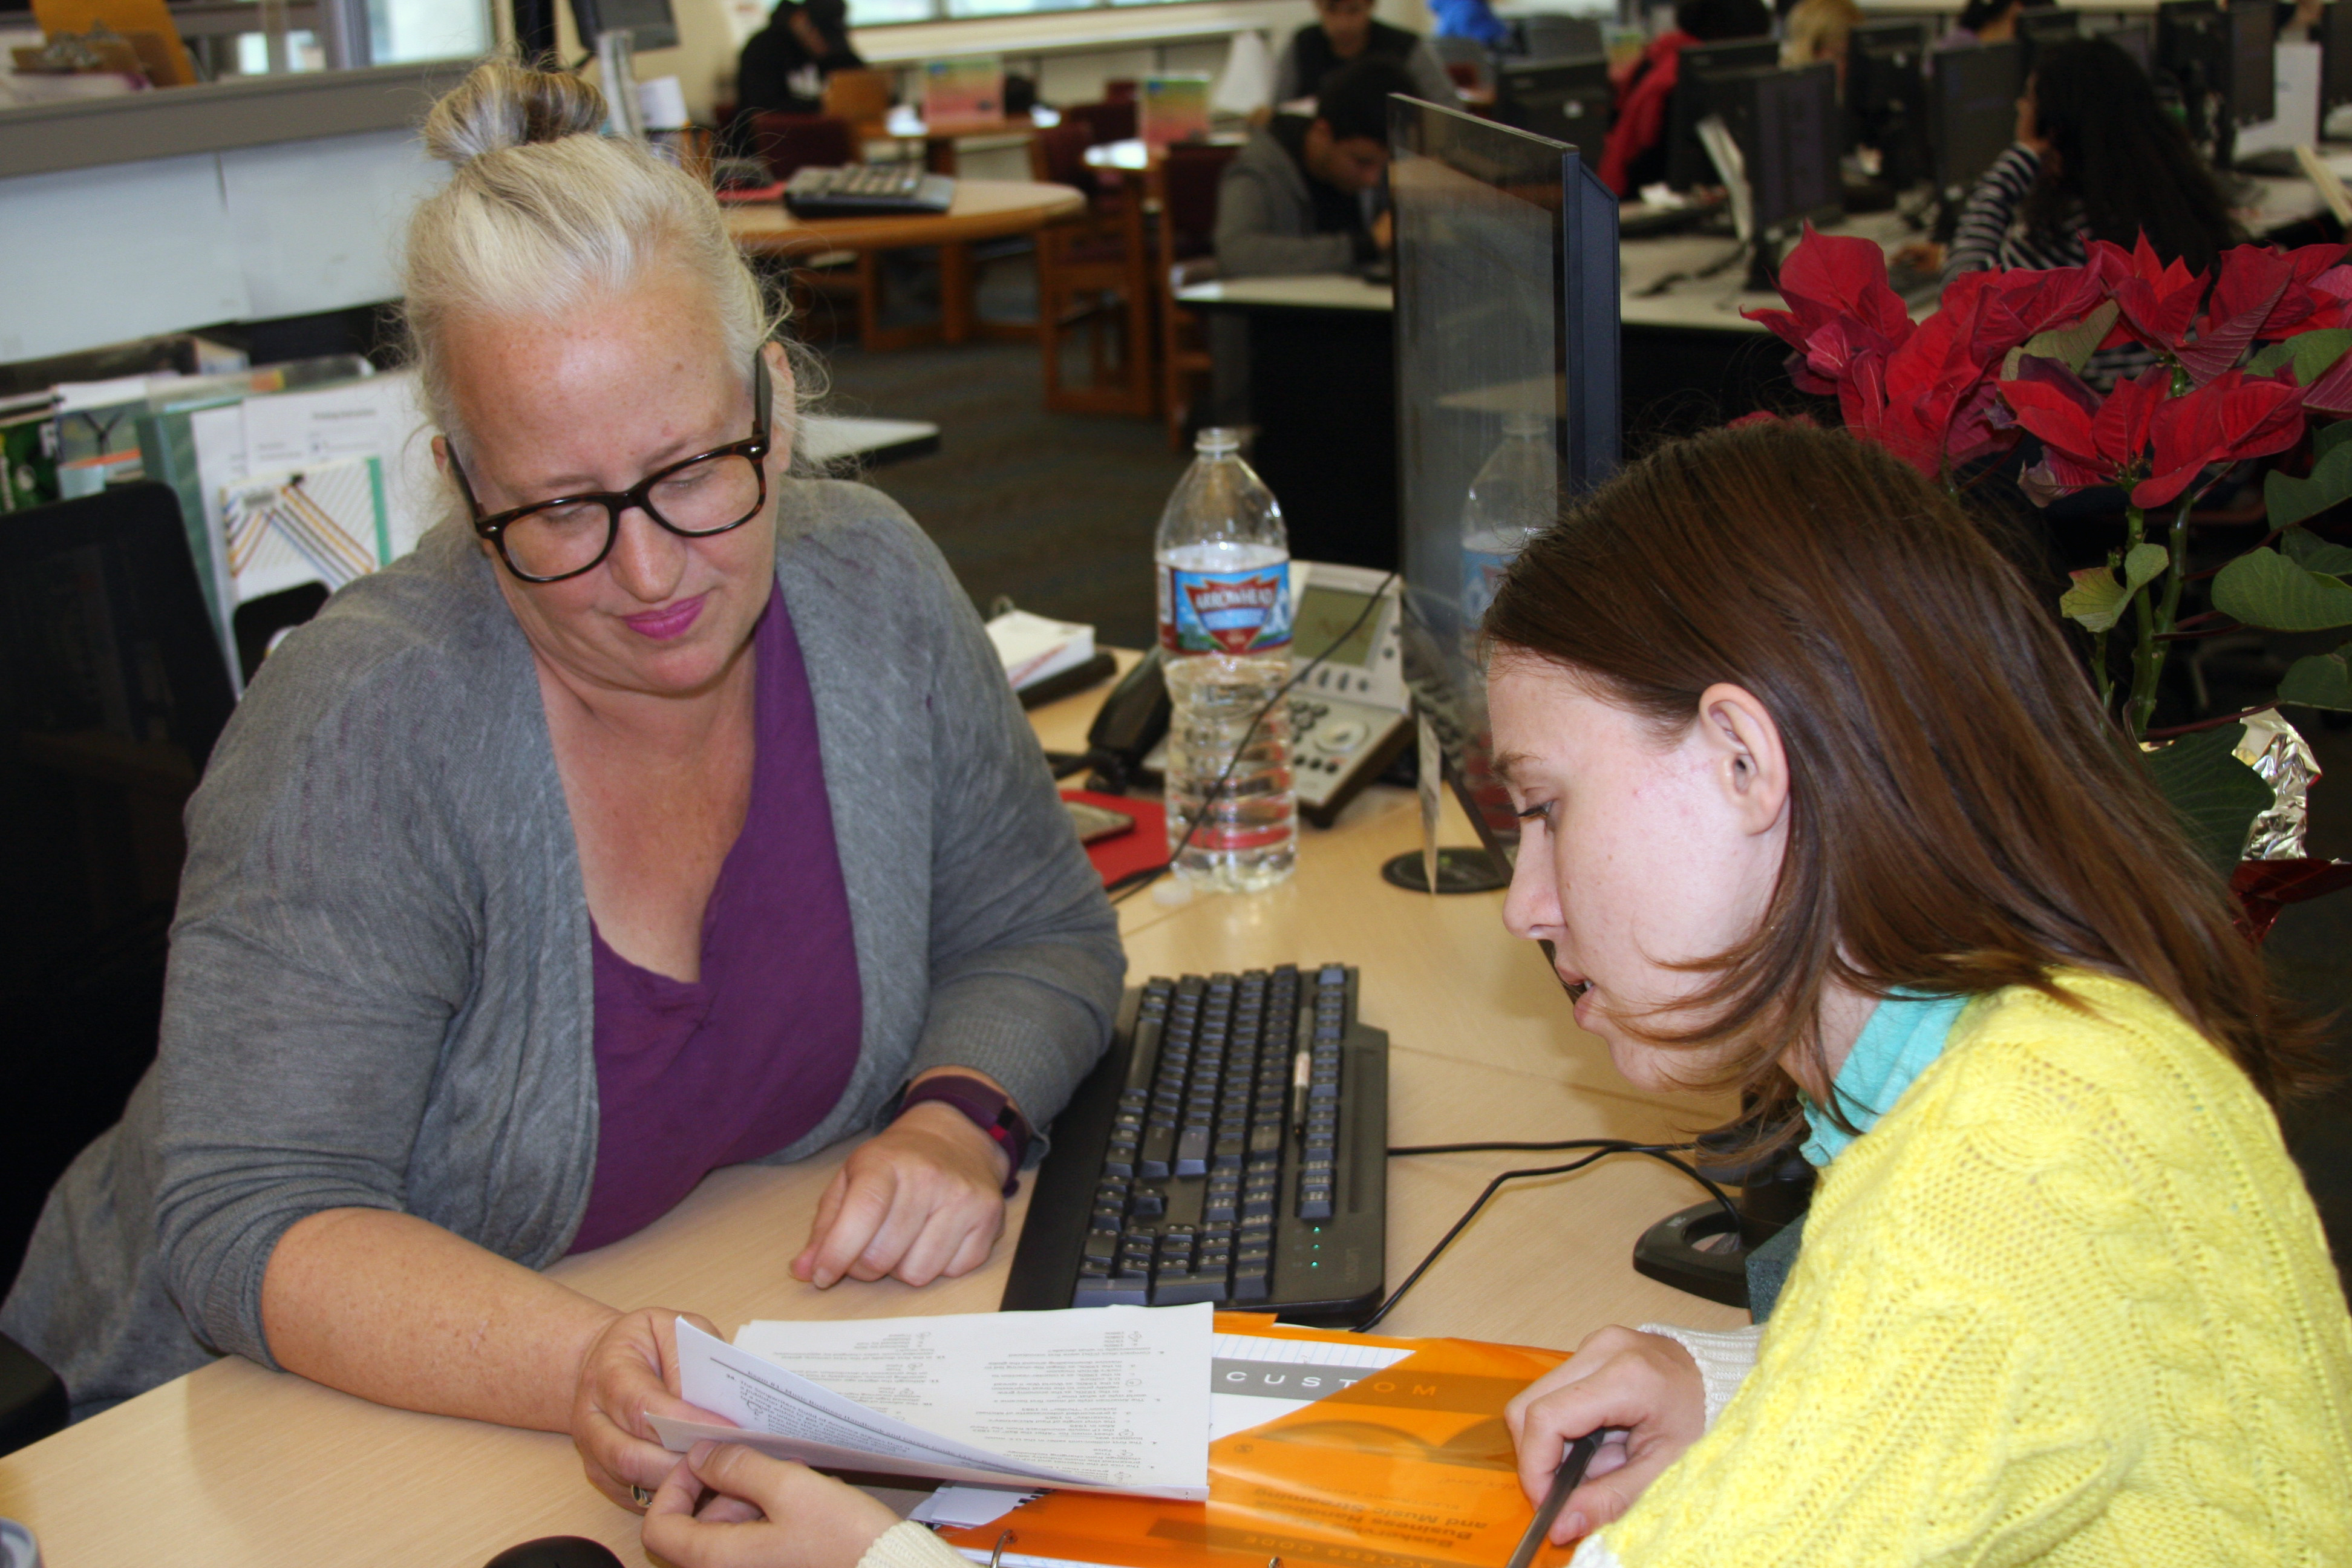 Librarian assisting a student